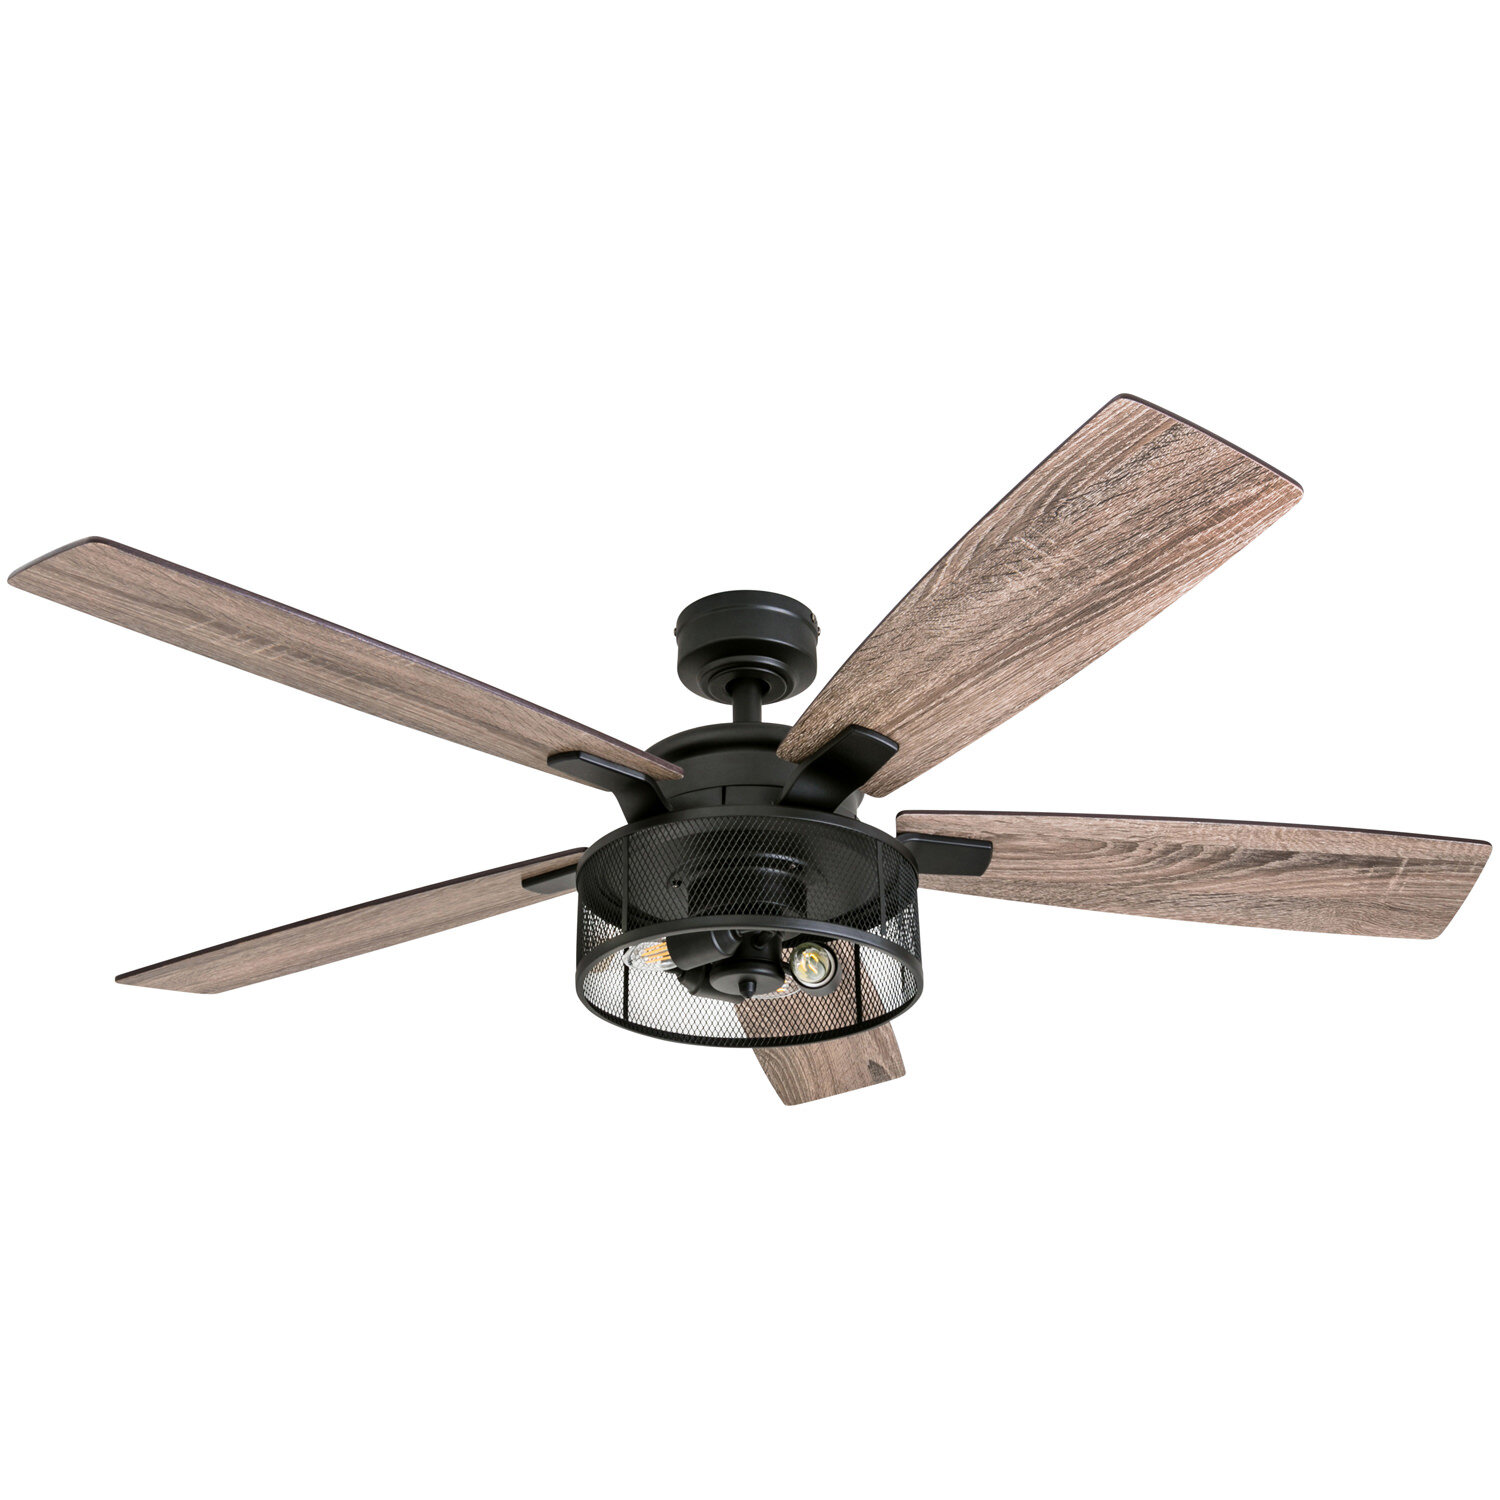 Gracie Oaks 52 Divisadero 5 Blade Standard Ceiling Fan With Remote Control And Light Kit Included Reviews Wayfair